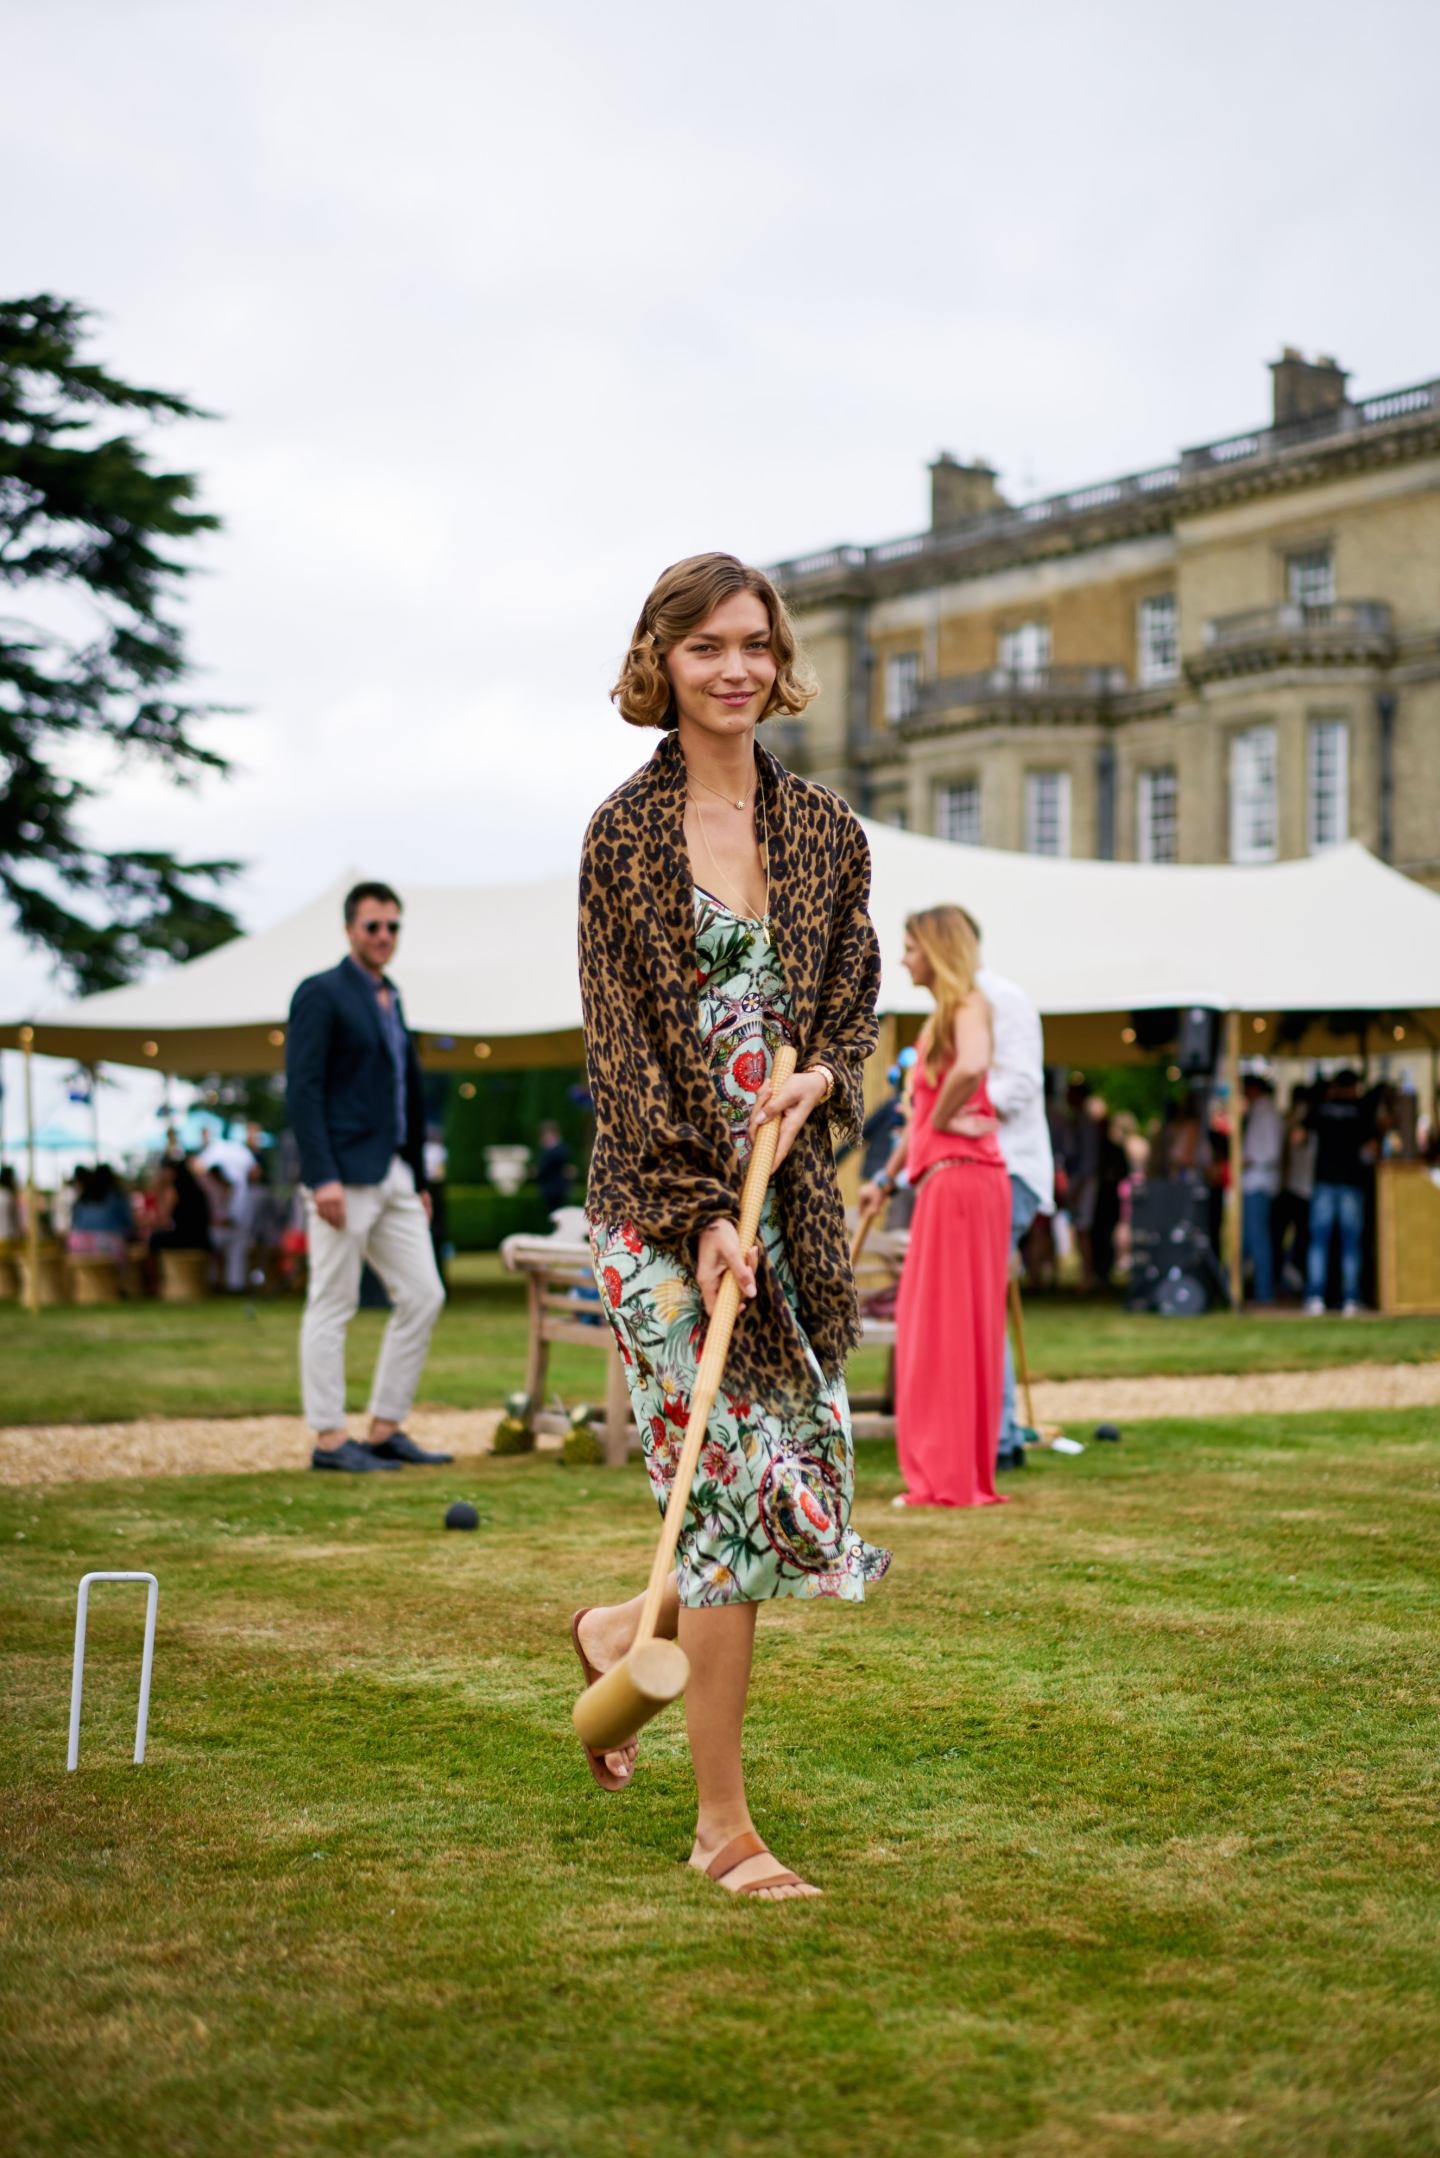 Croquet at Hedsor House